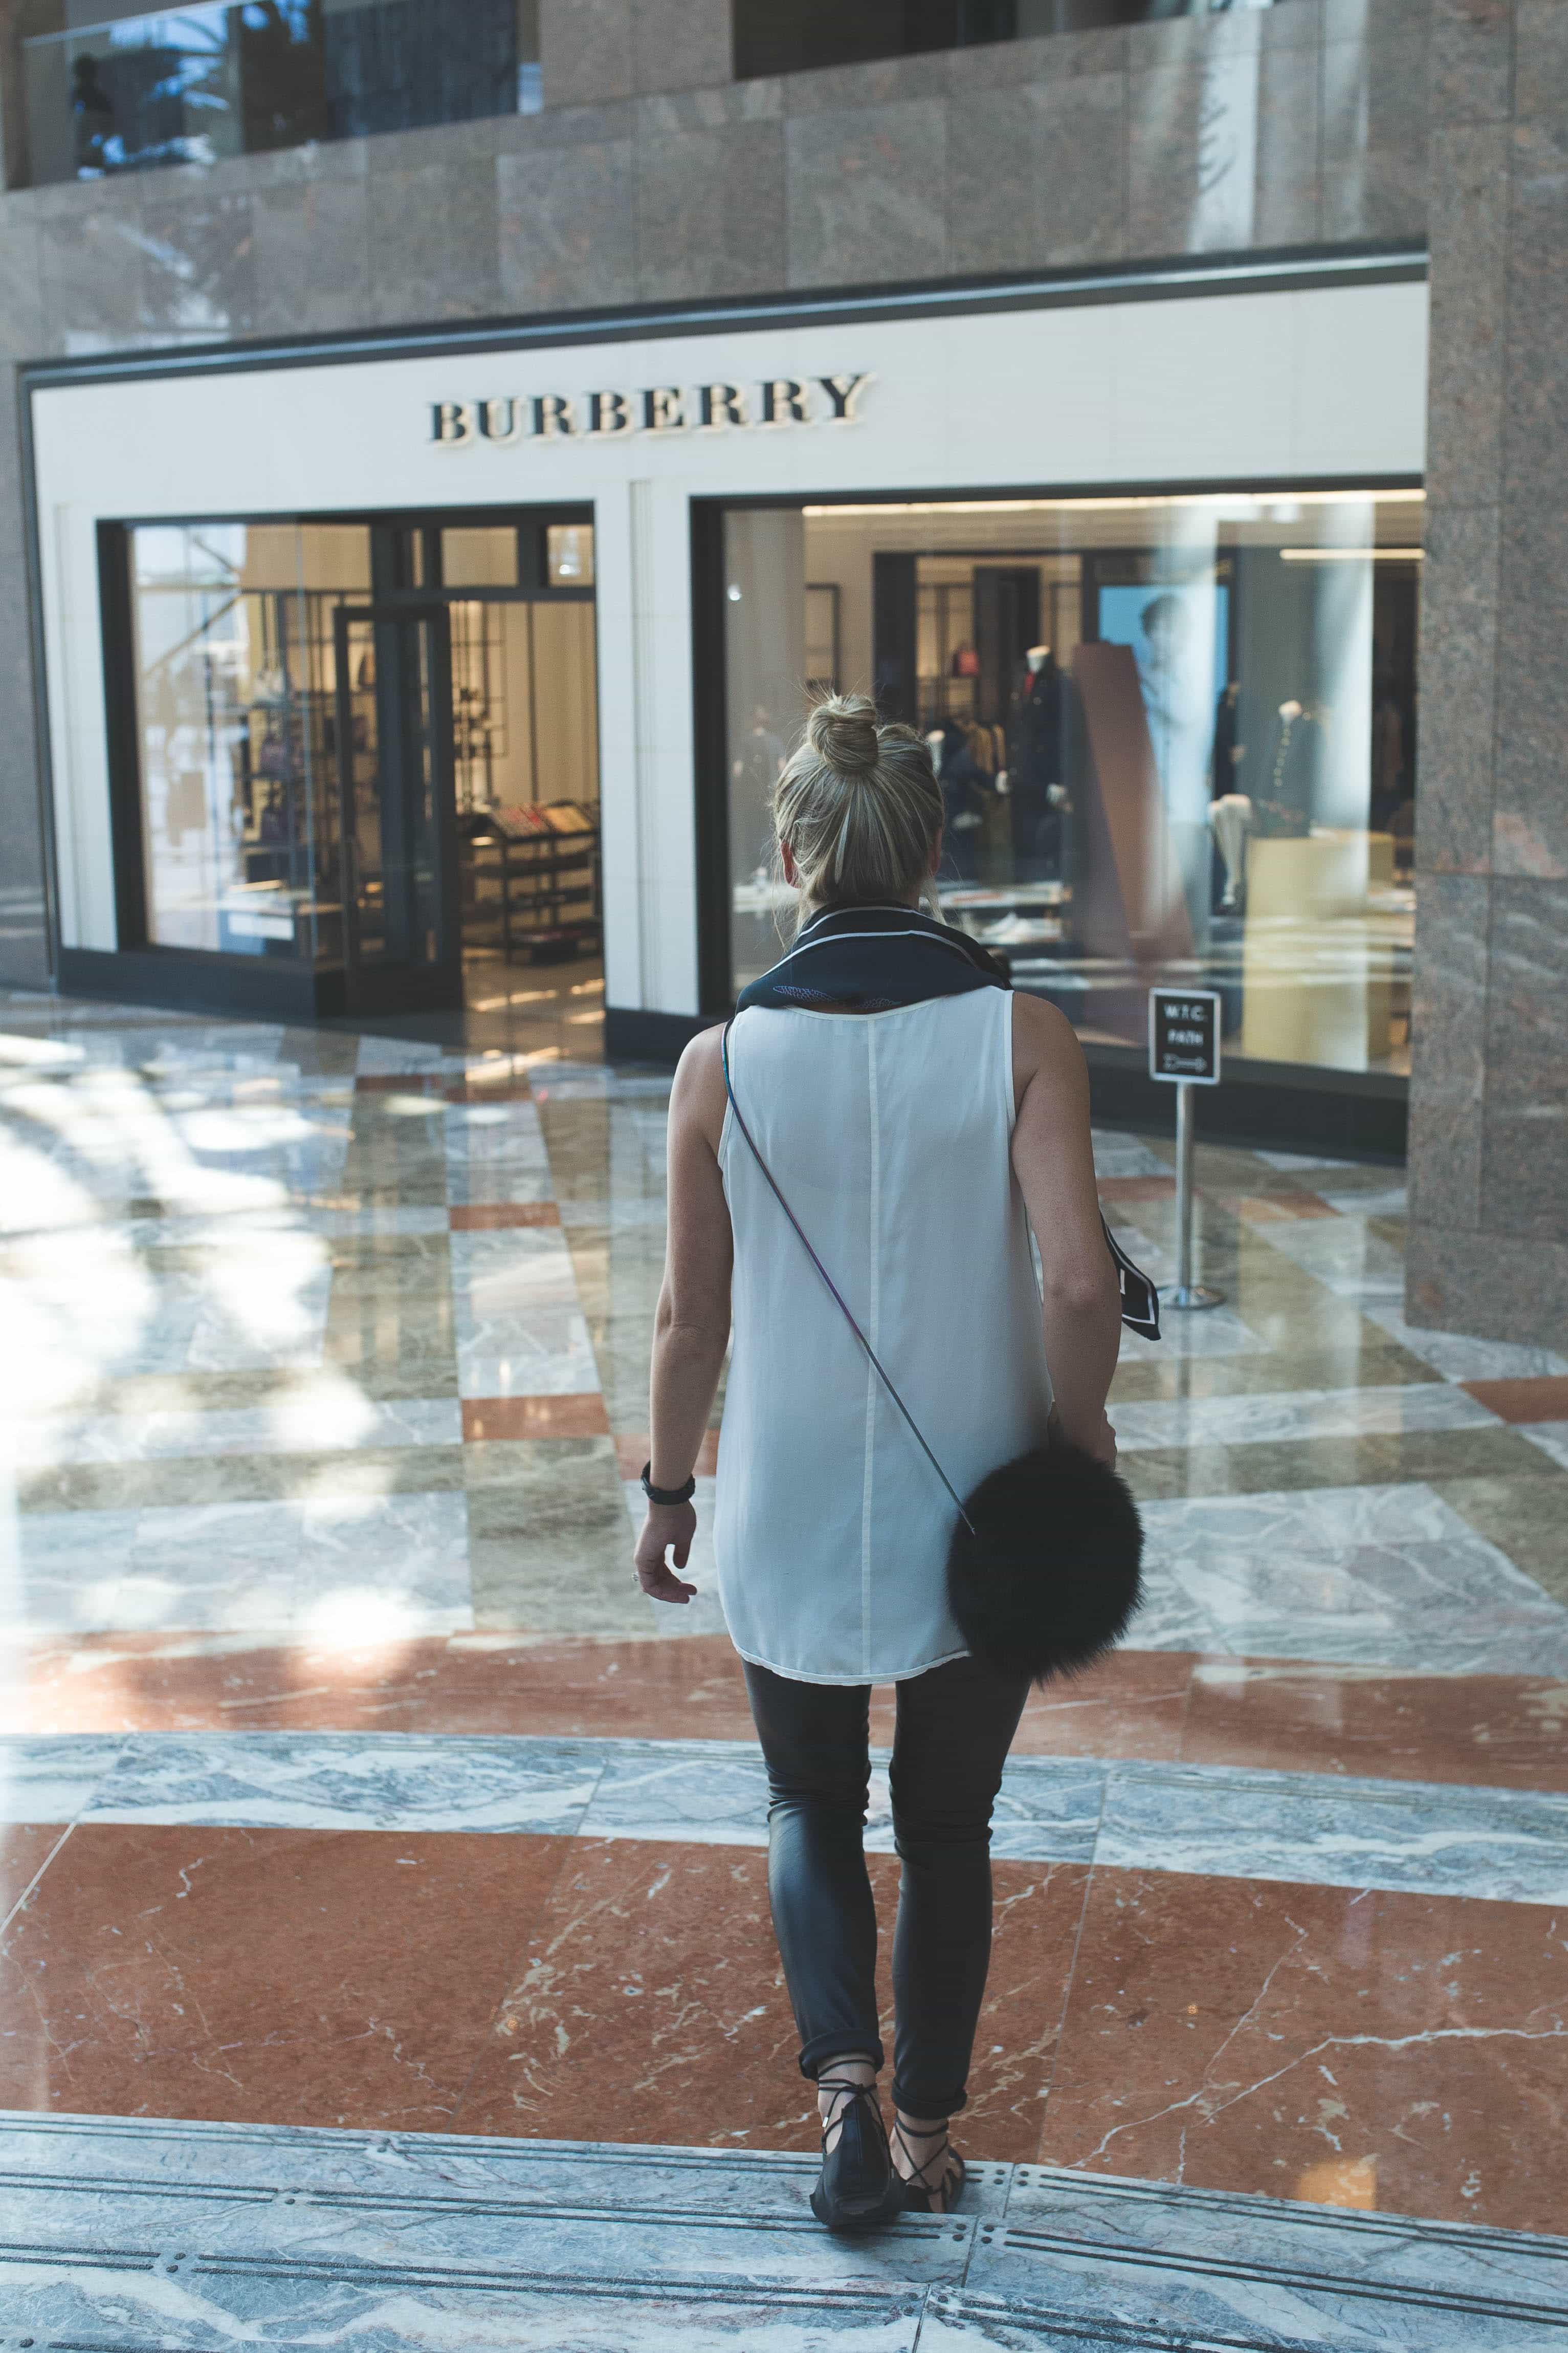 burberry-brookfield-place